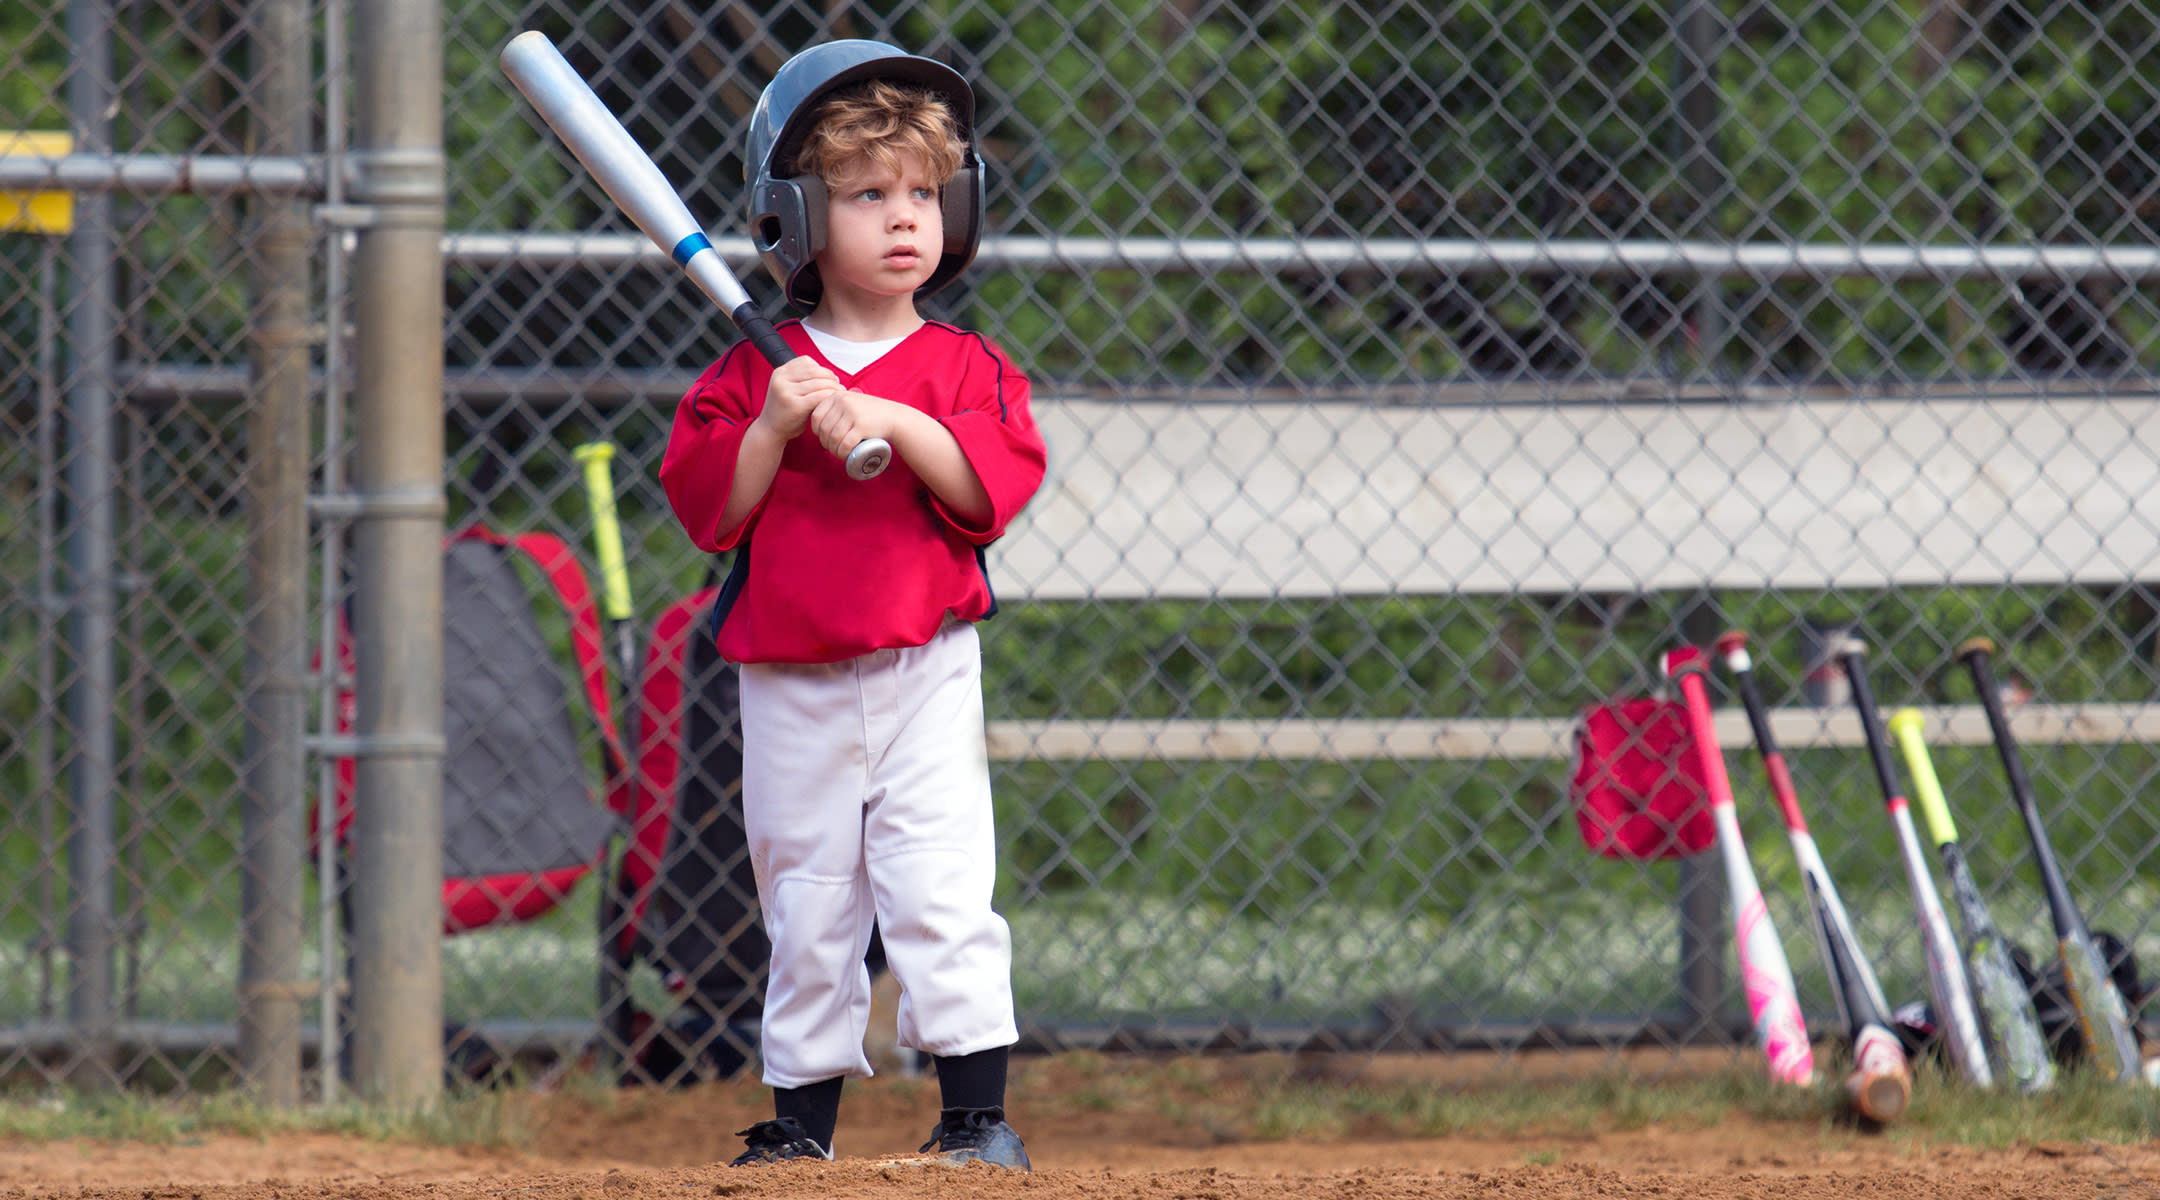 small child playing baseball at bat